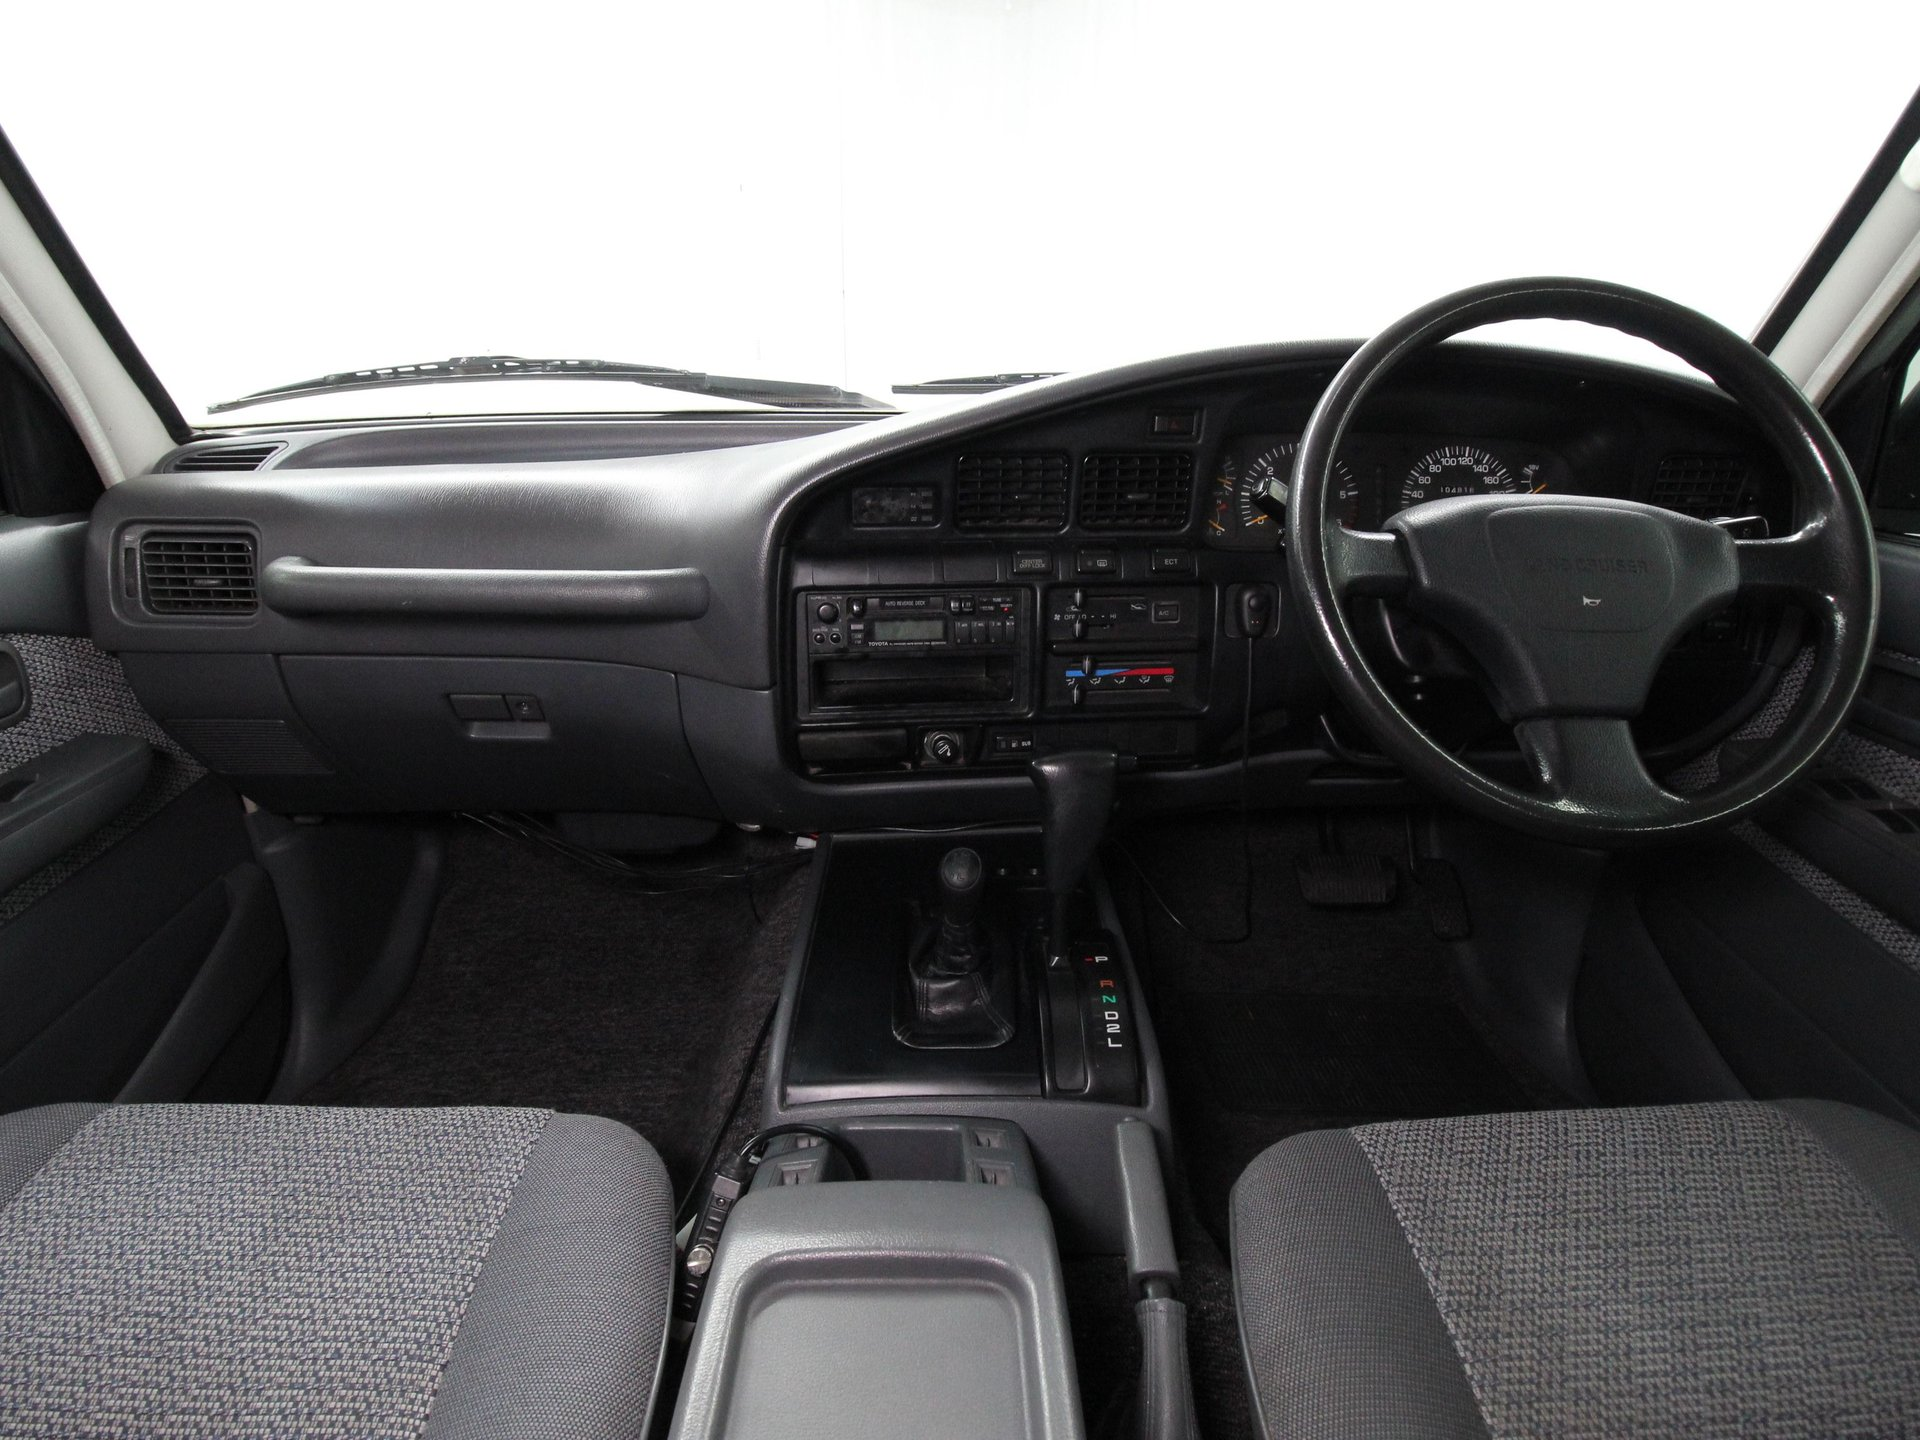 1994 Toyota Land Cruiser